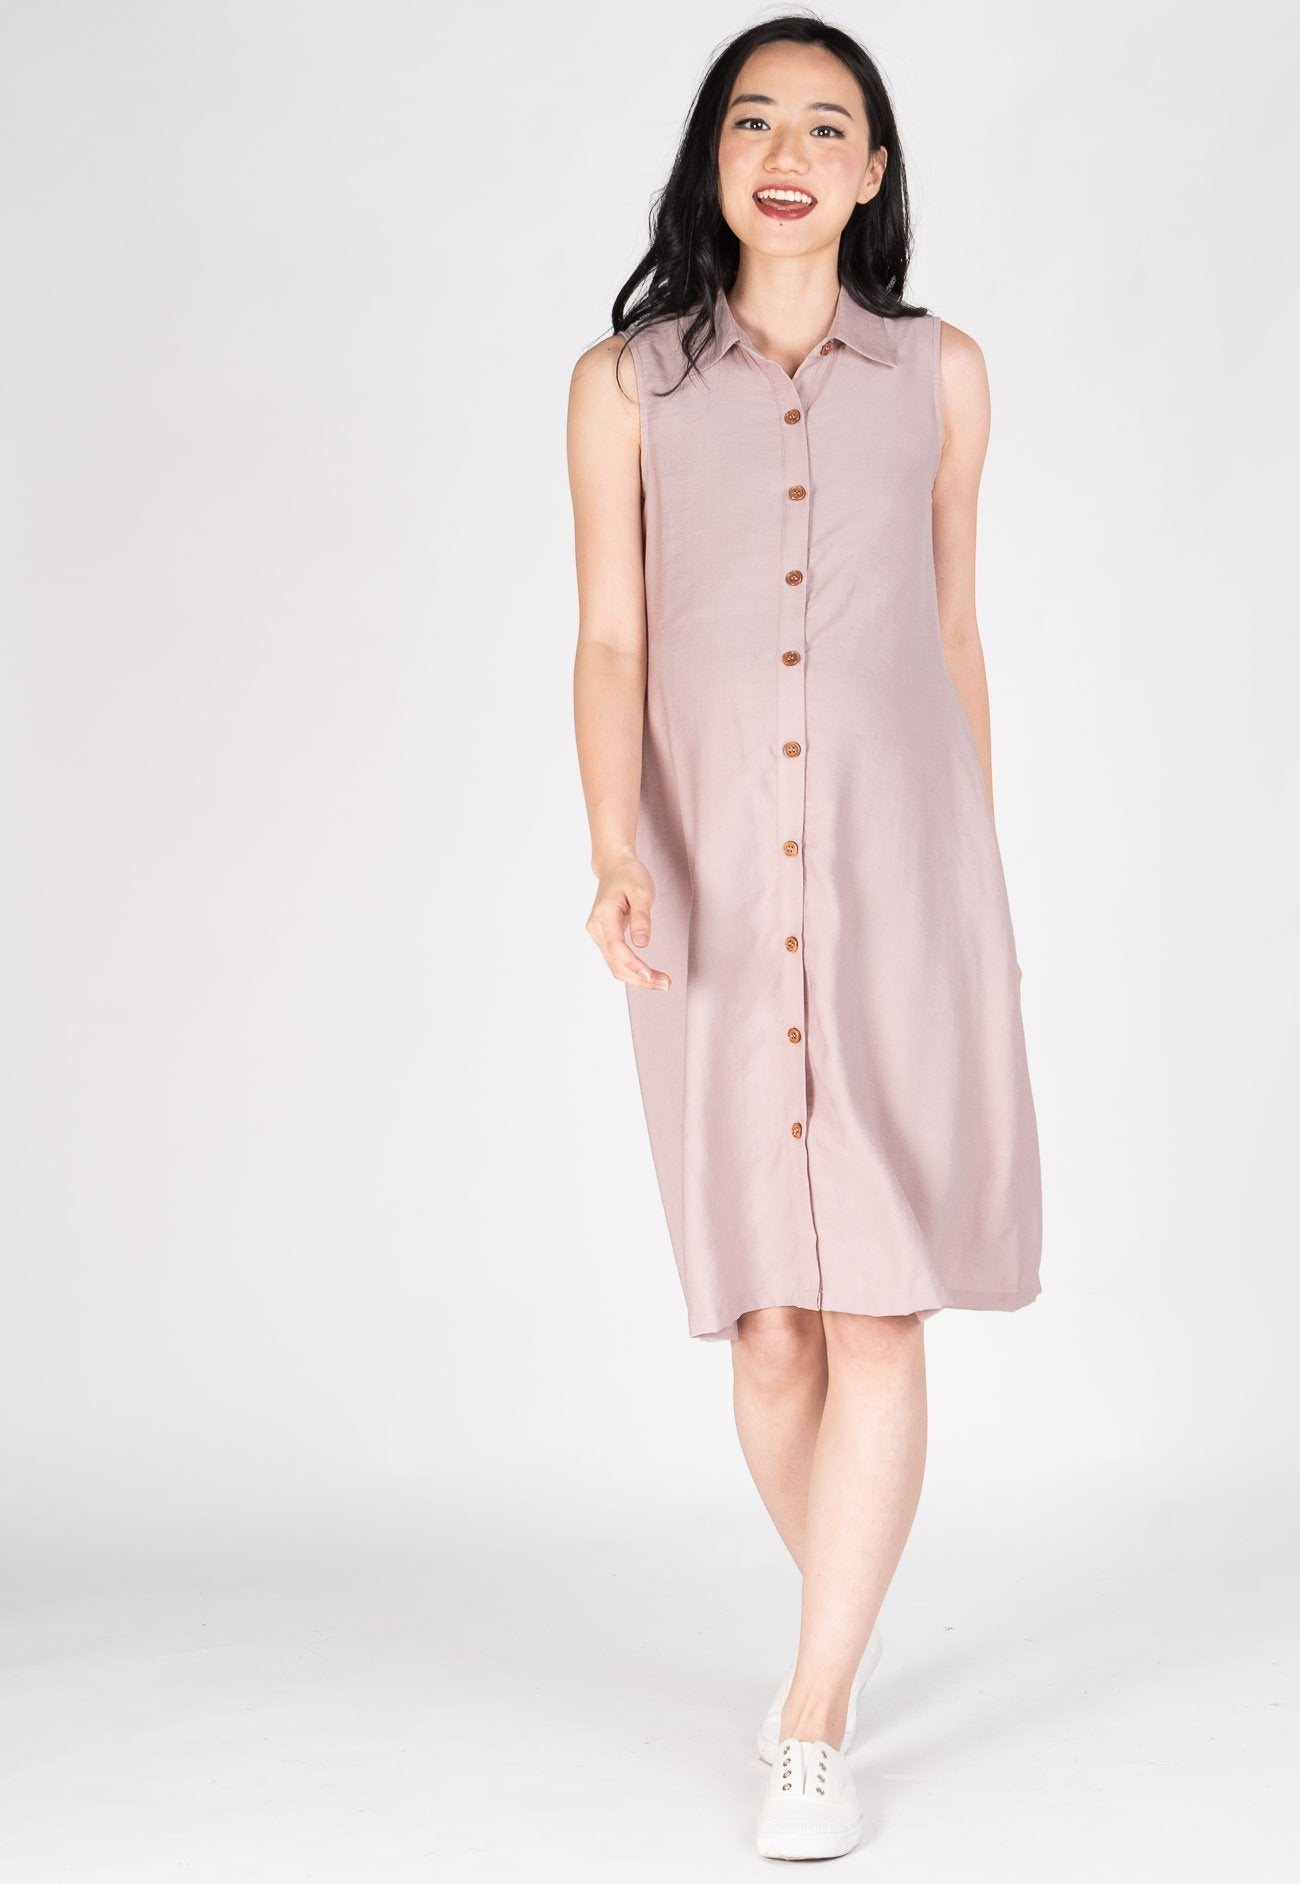 Joyfully Yours Nursing Midi Dress in Pink Nursing Wear Mothercot